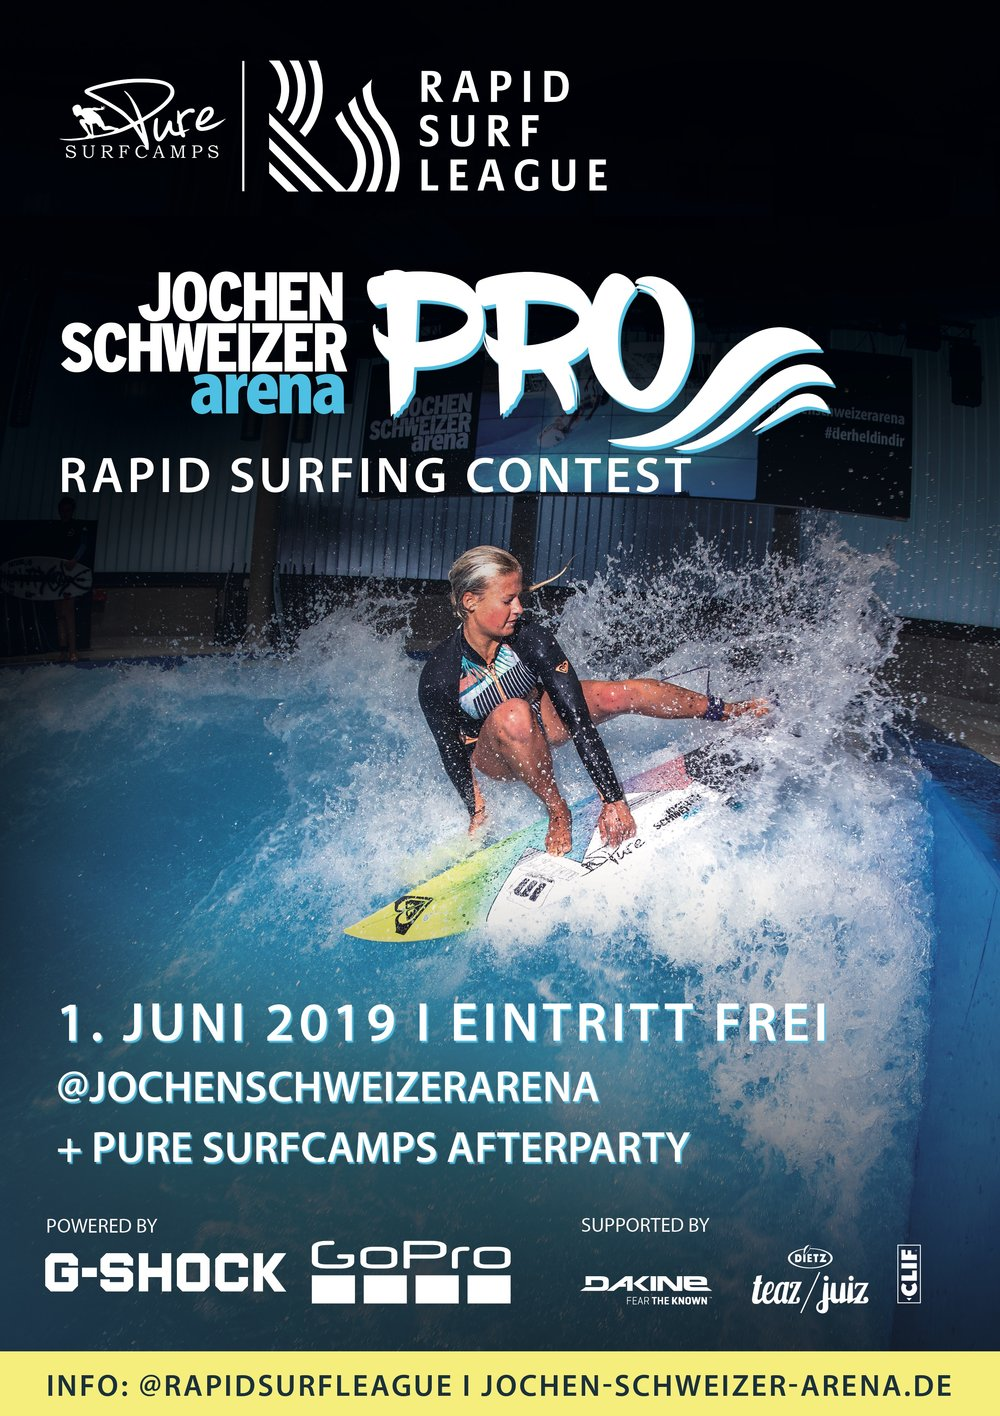 Poster_JochenSchweizerArenaPro_RapidSurfLeague_final.jpg